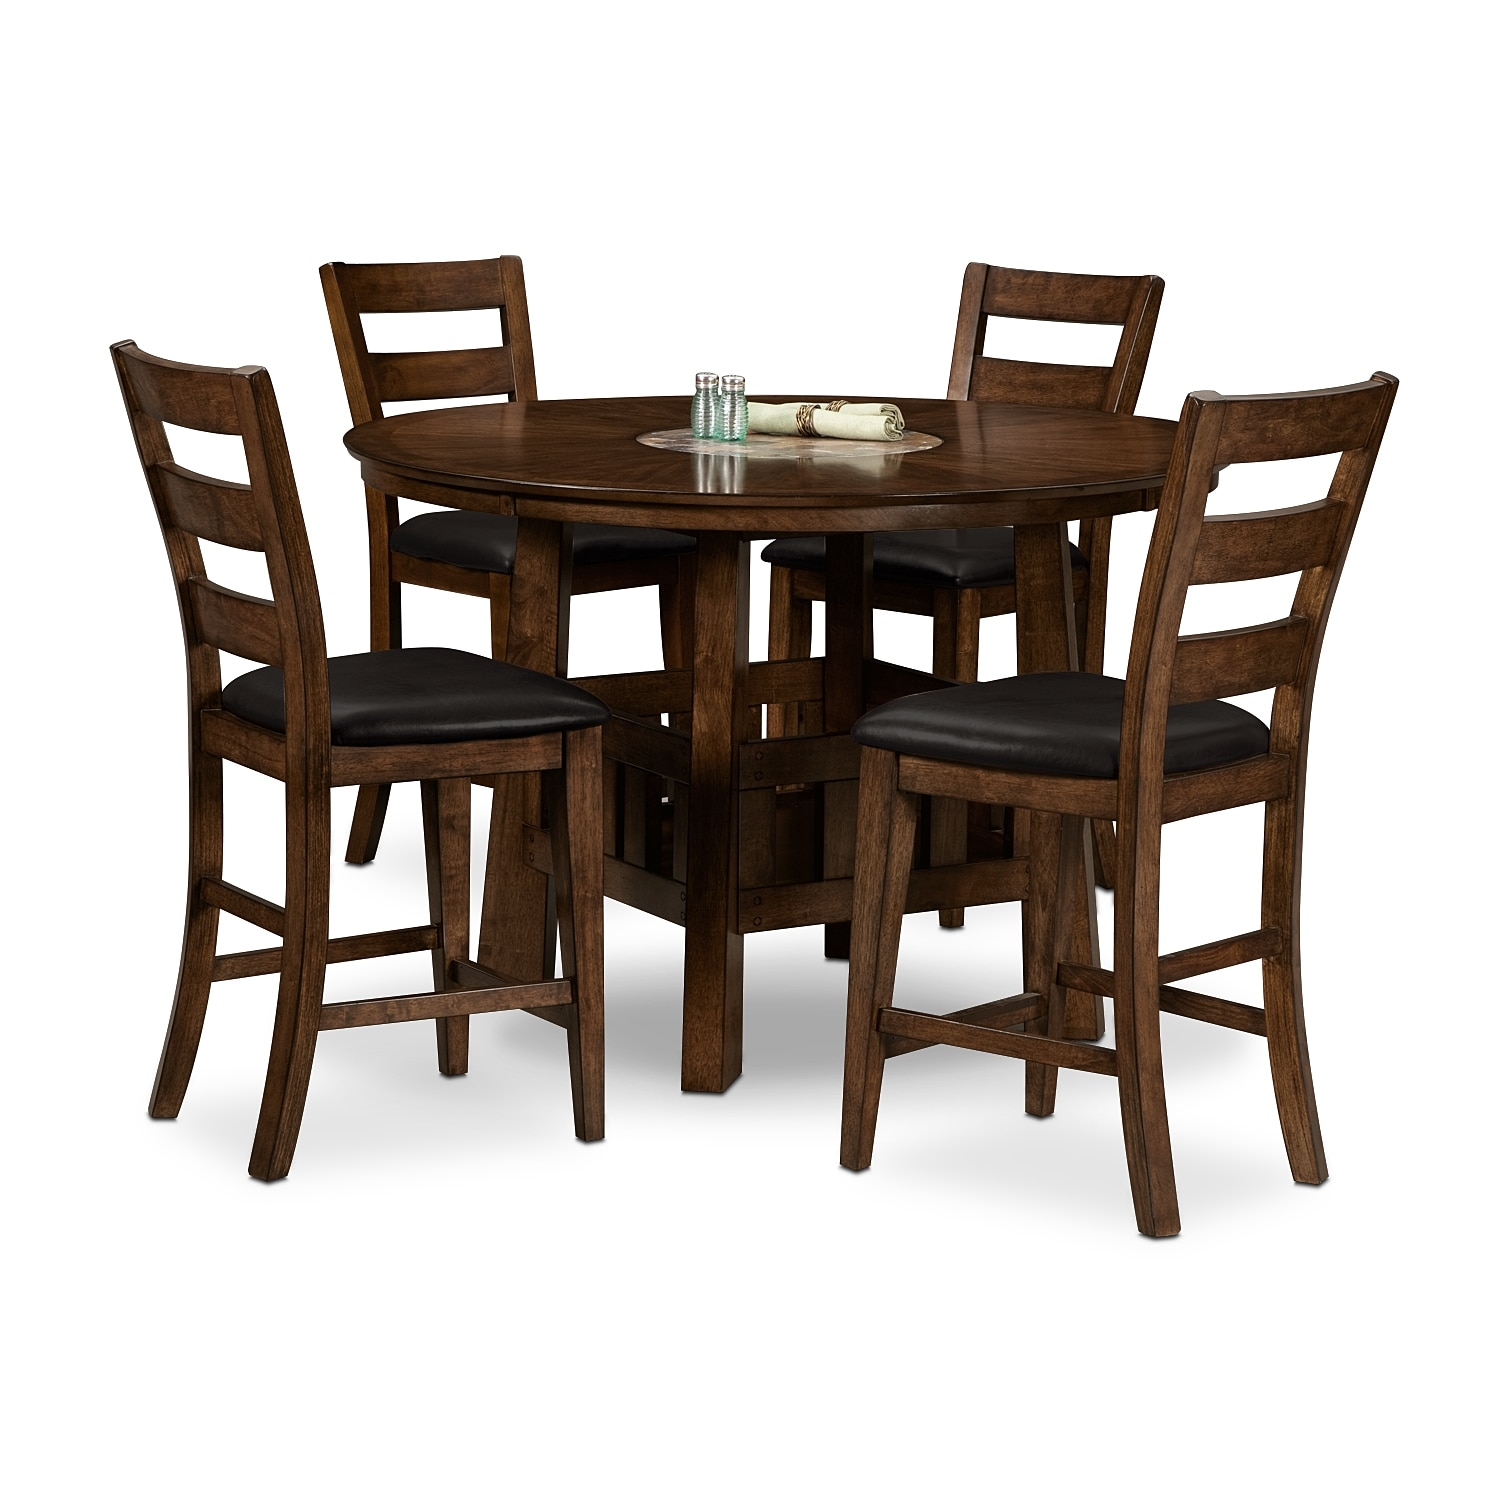 Dining Room Furniture - Harbor Pointe Counter-Height Table and 4 Chairs - Oak